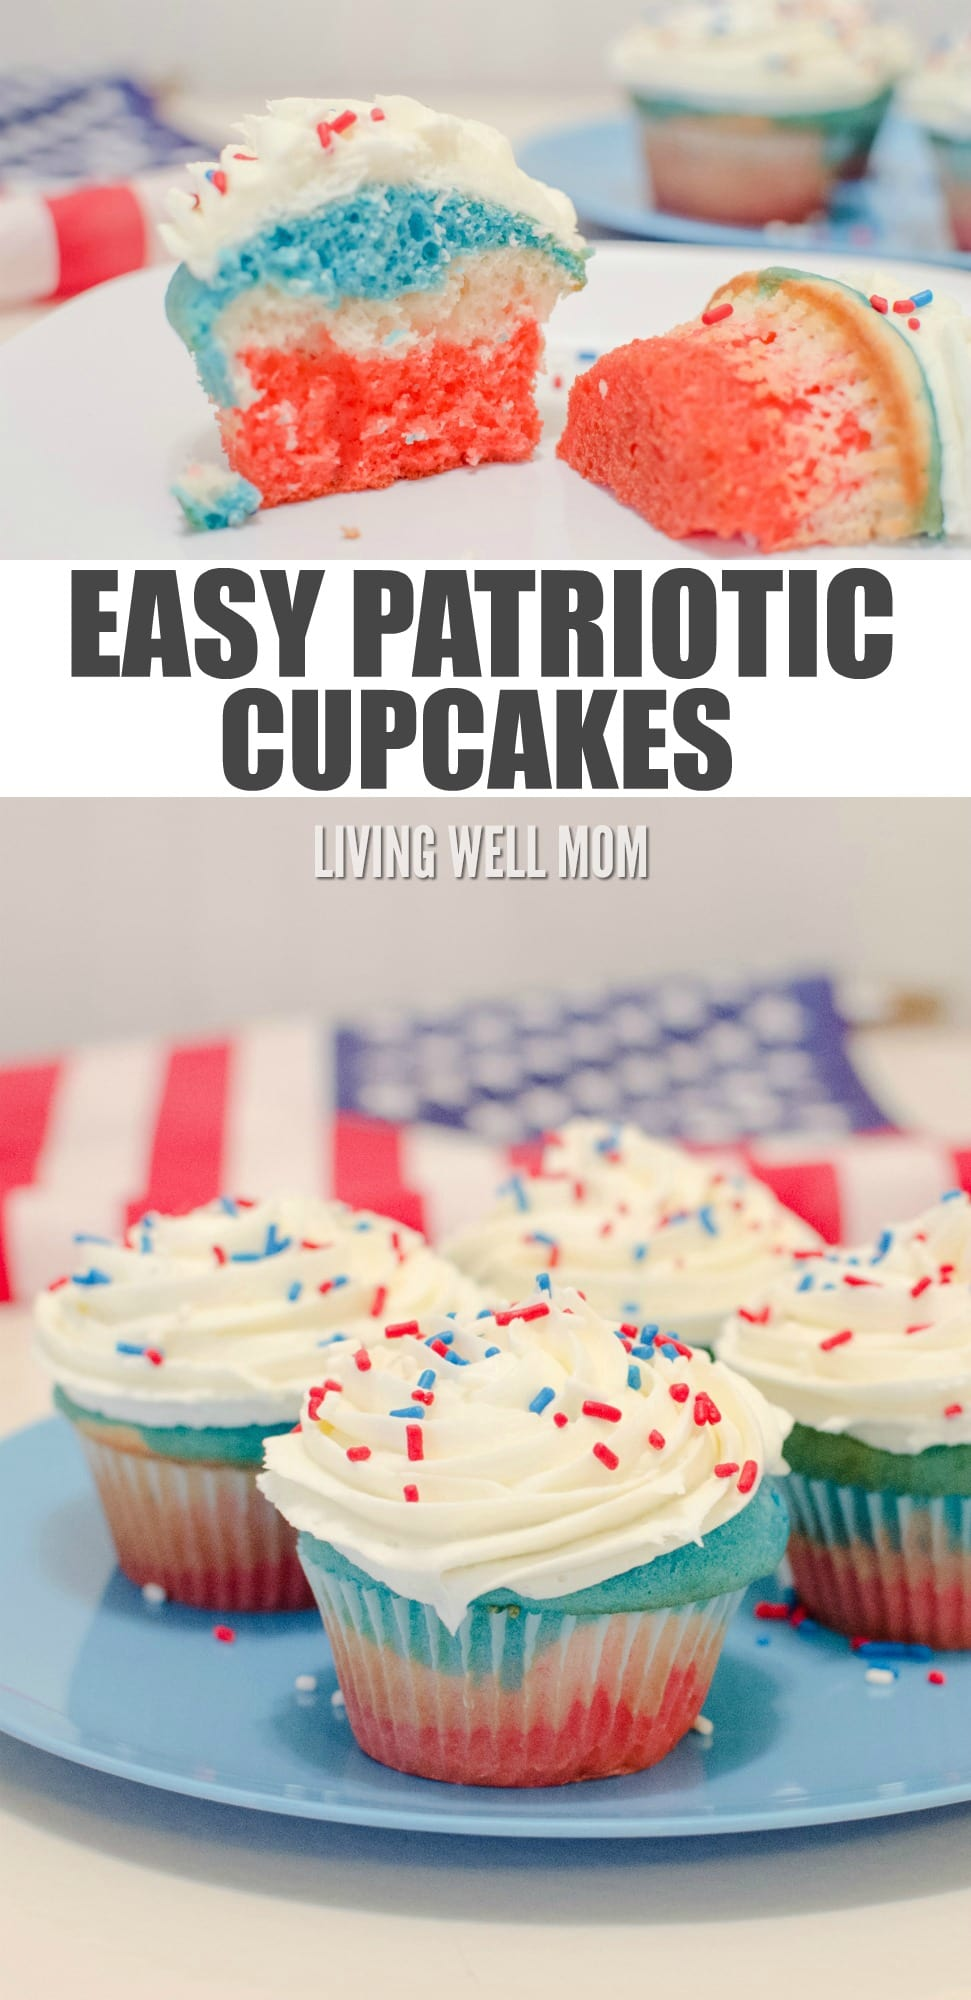 Delightful Patriotic Cupcakes are easy to make and perfectly red-white-and-blue festive for any 4th of July or Memorial Day party! This recipe is simple enough kids can help - you don't have to be an expert baker!